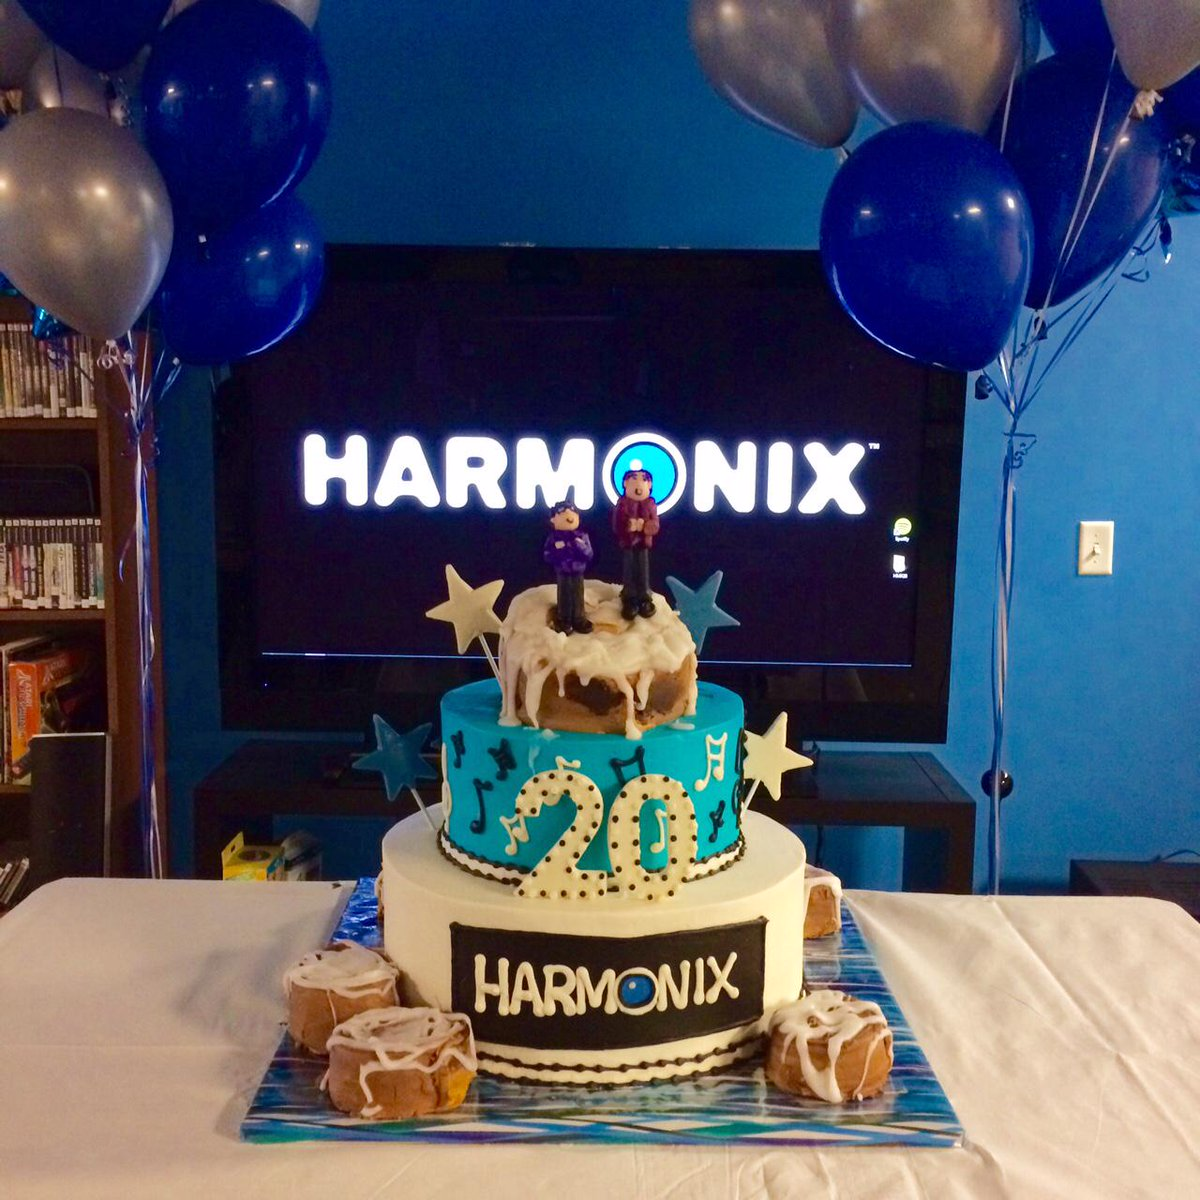 Today is Harmonix's 20th bday! We're celebrating with a cinnamon bun cake. <3 for all your support since 1995. #HMX20 http://t.co/czLiR9Oe4P